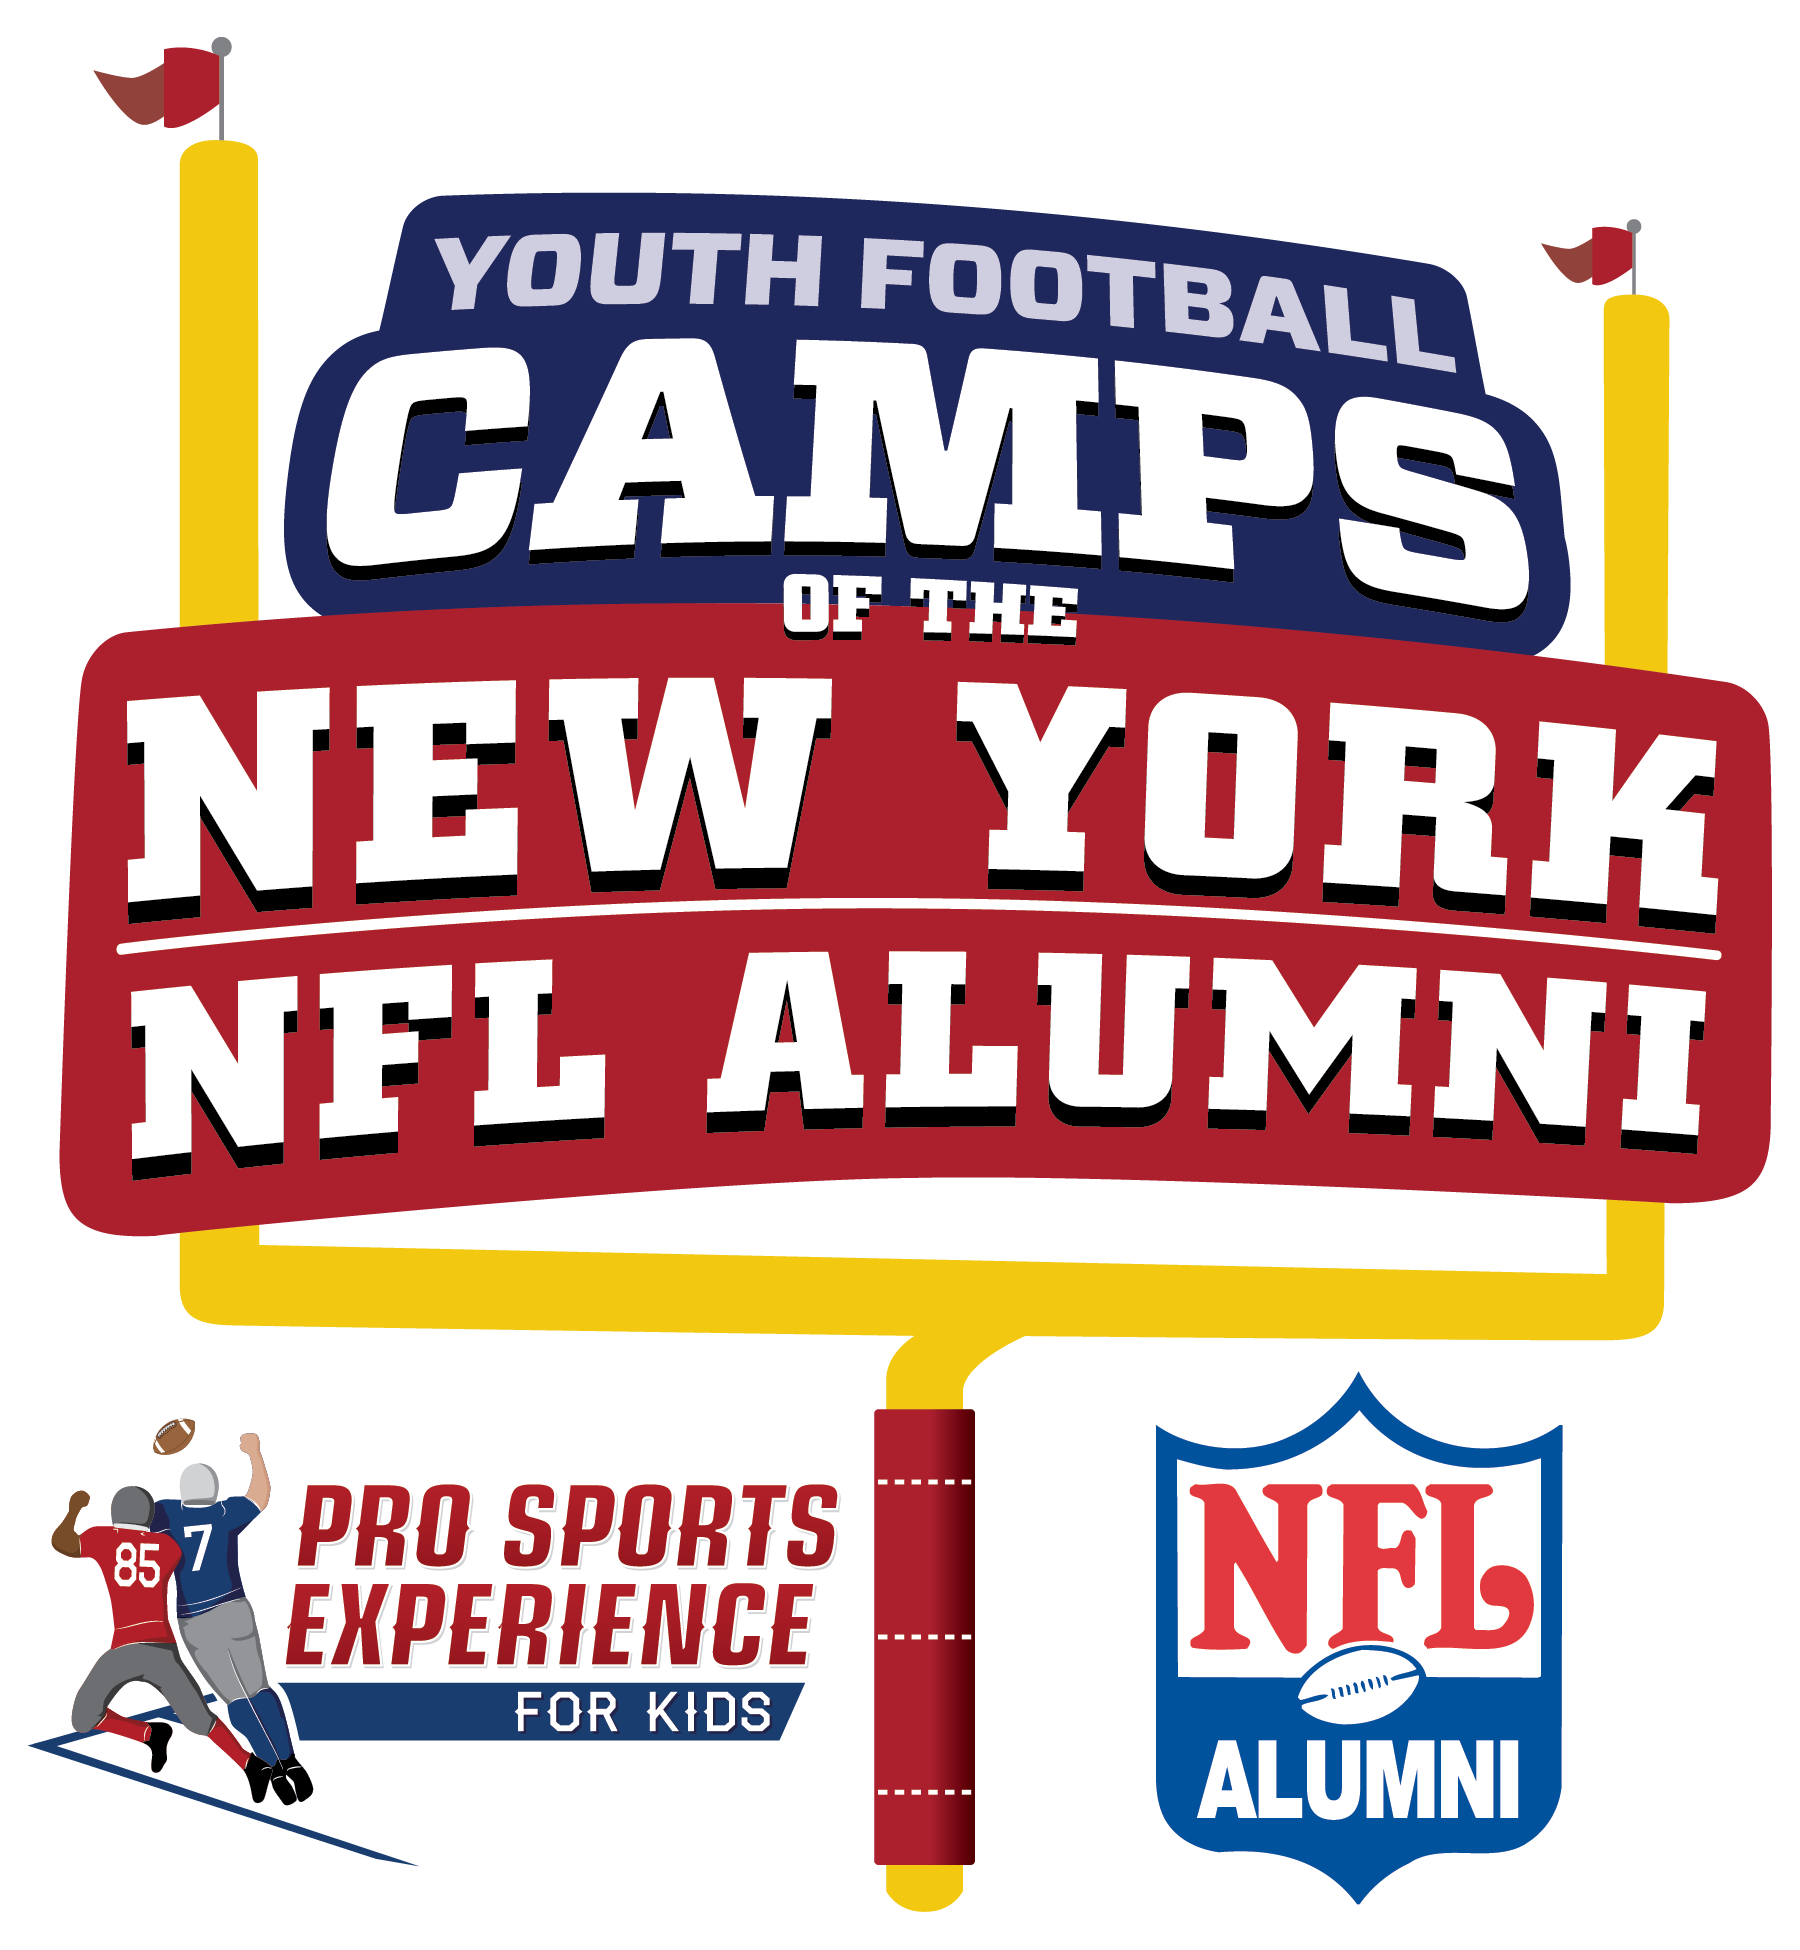 New York NFL Alumni Hero Youth Football Camps - Bernardsville